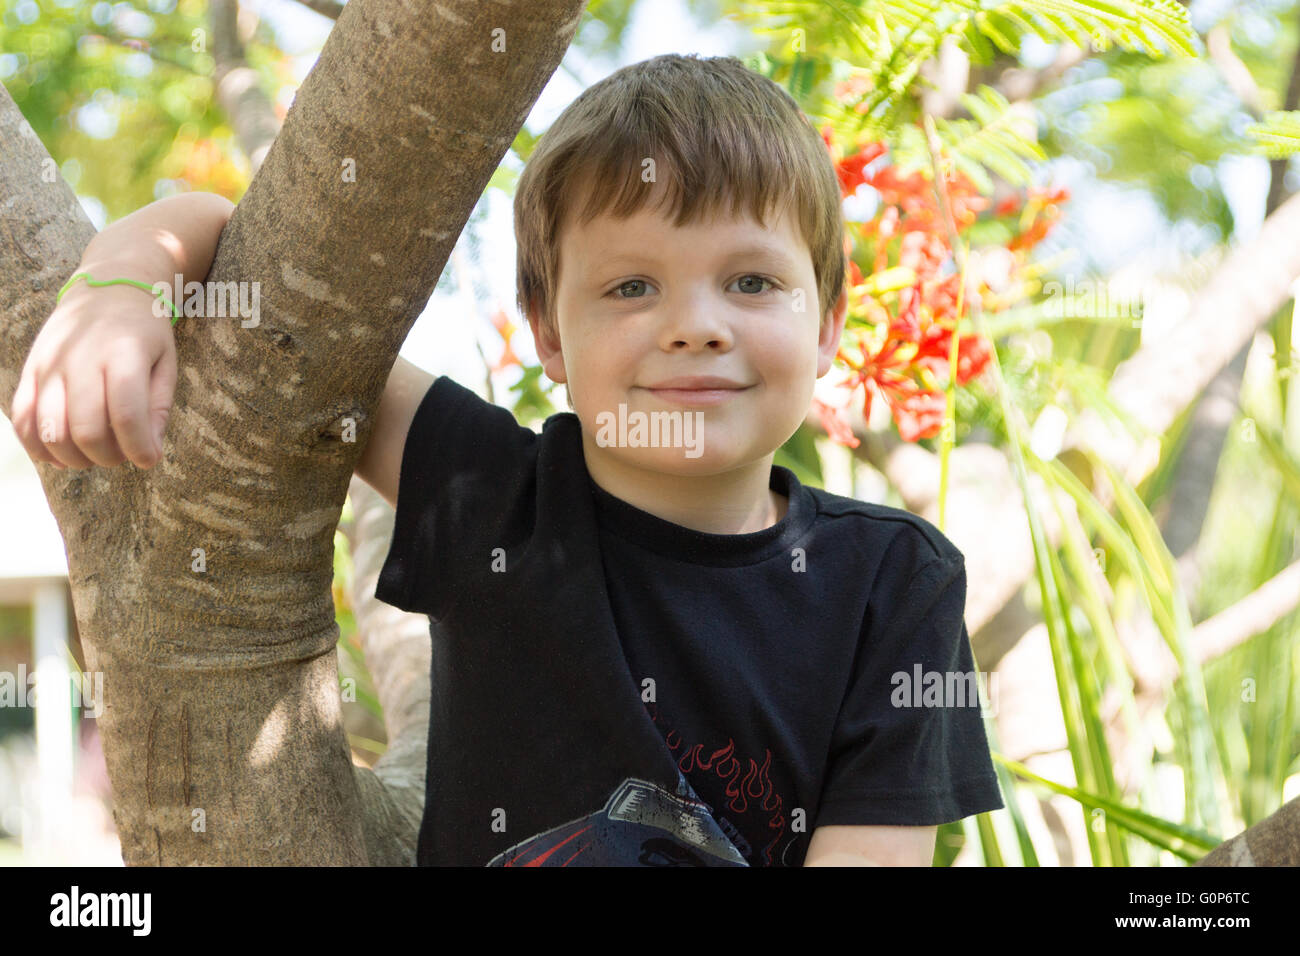 Boy sitting in Poinciana tree smiling - Stock Image